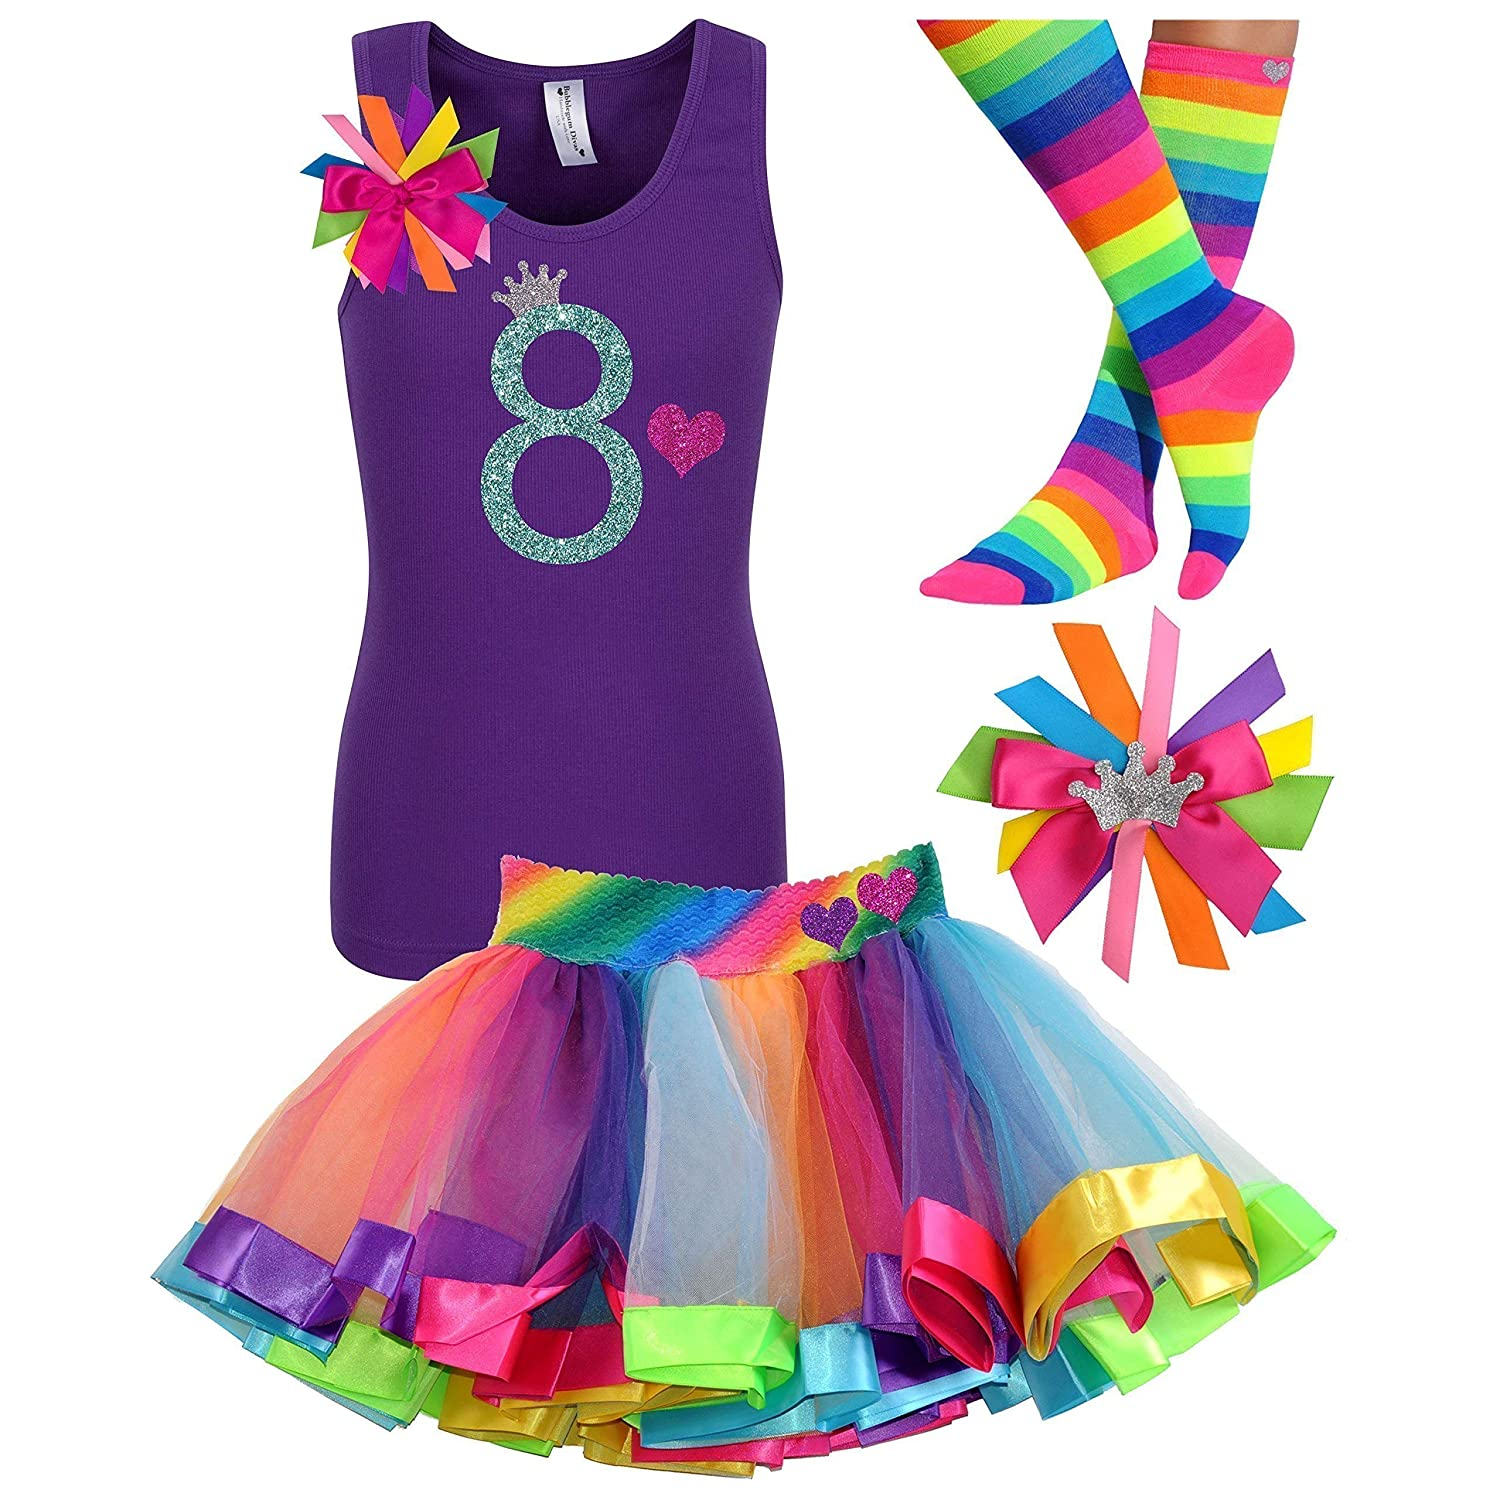 8th Birthday Shirt Rainbow Tutu Girls Party Outfit 4PC Gift Set Personalized Name Age 8